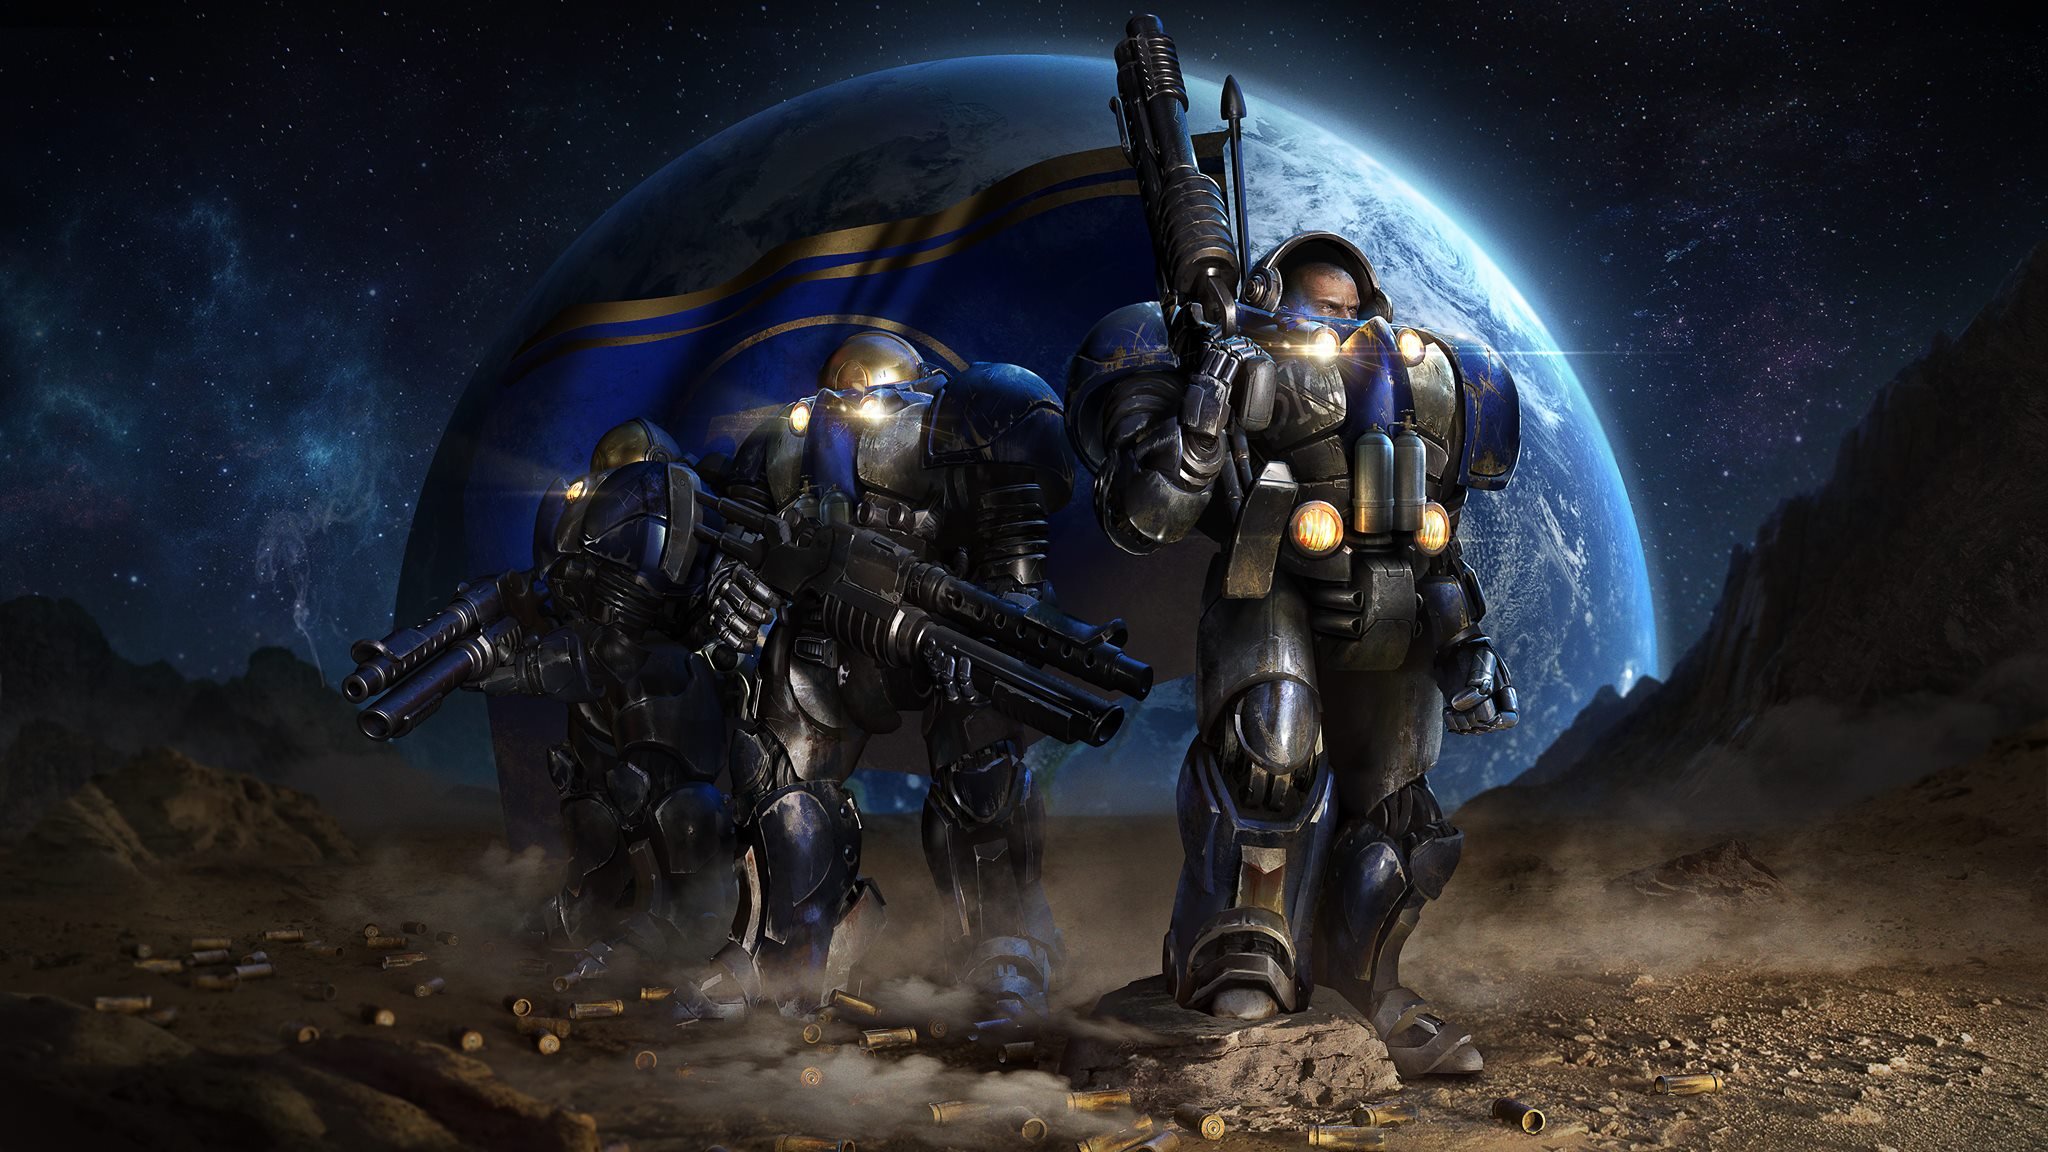 StarCraft: Remastered is a love letter to fans that's